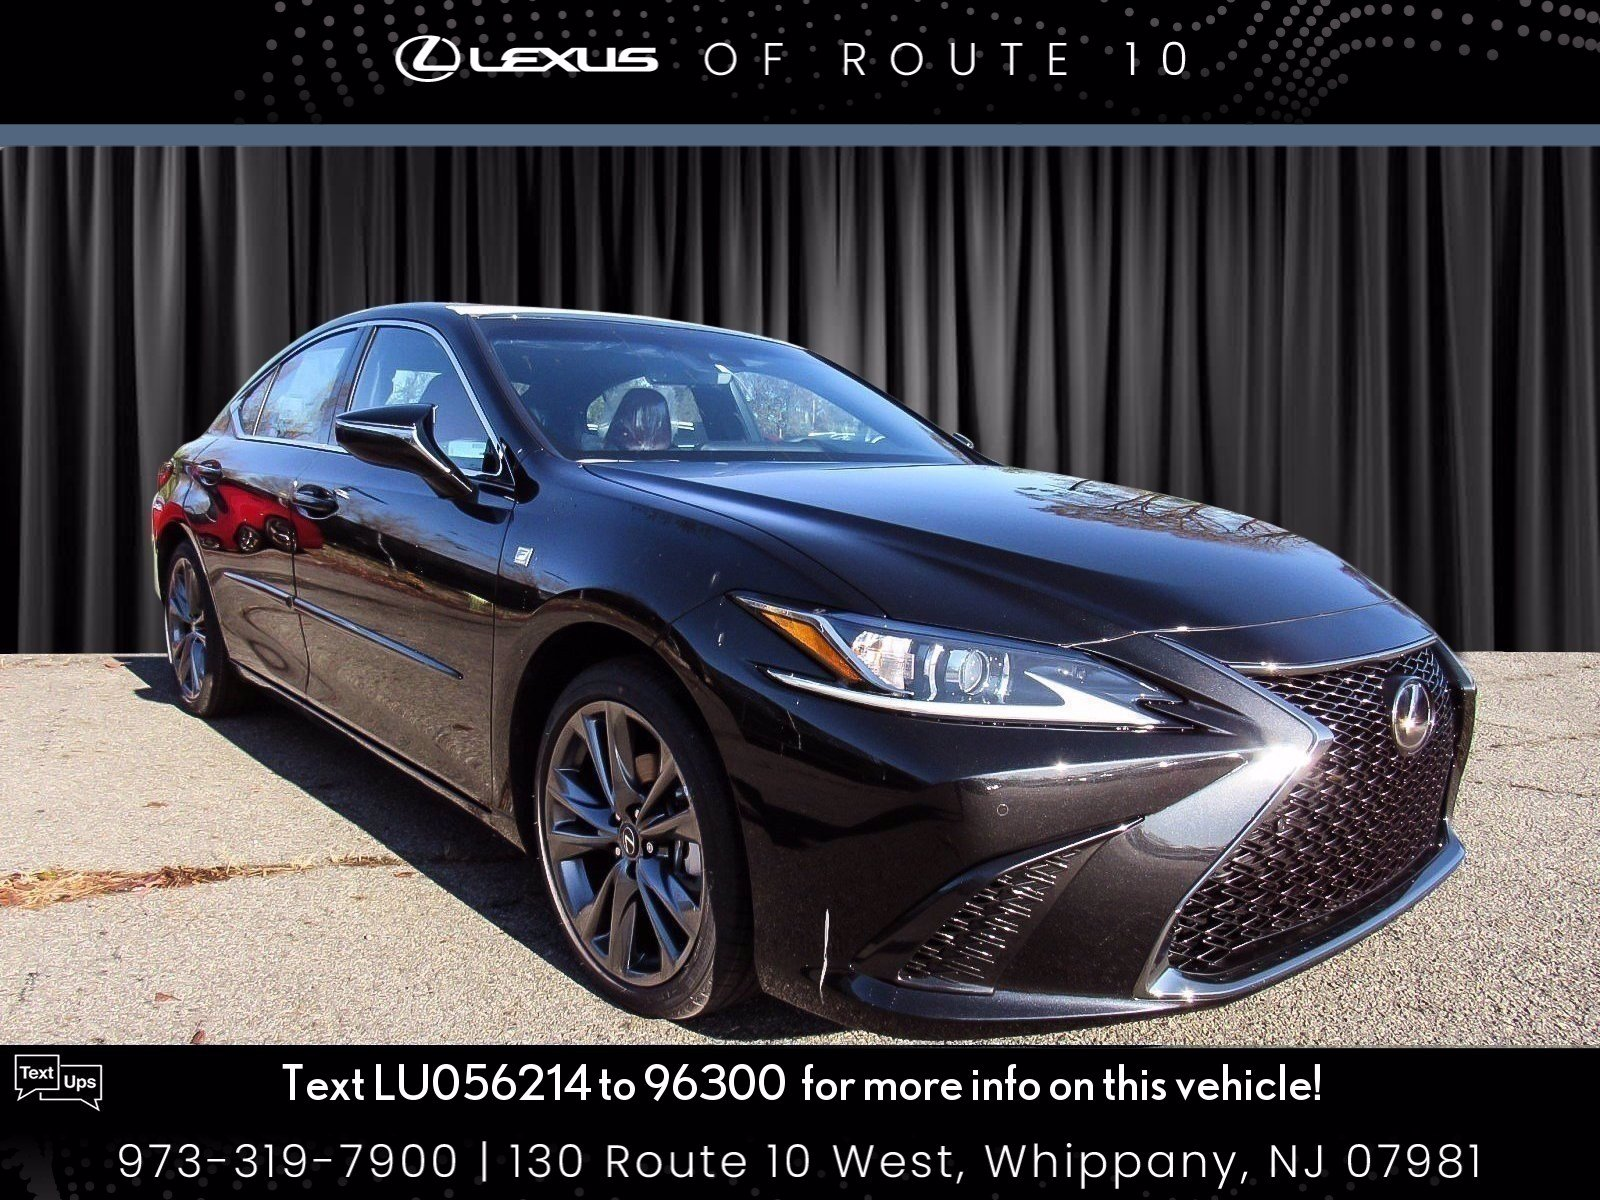 New 2020 Lexus Es Es 350 F Sport 4dr Car In Whippany Llu056214 Lexus Of Route 10